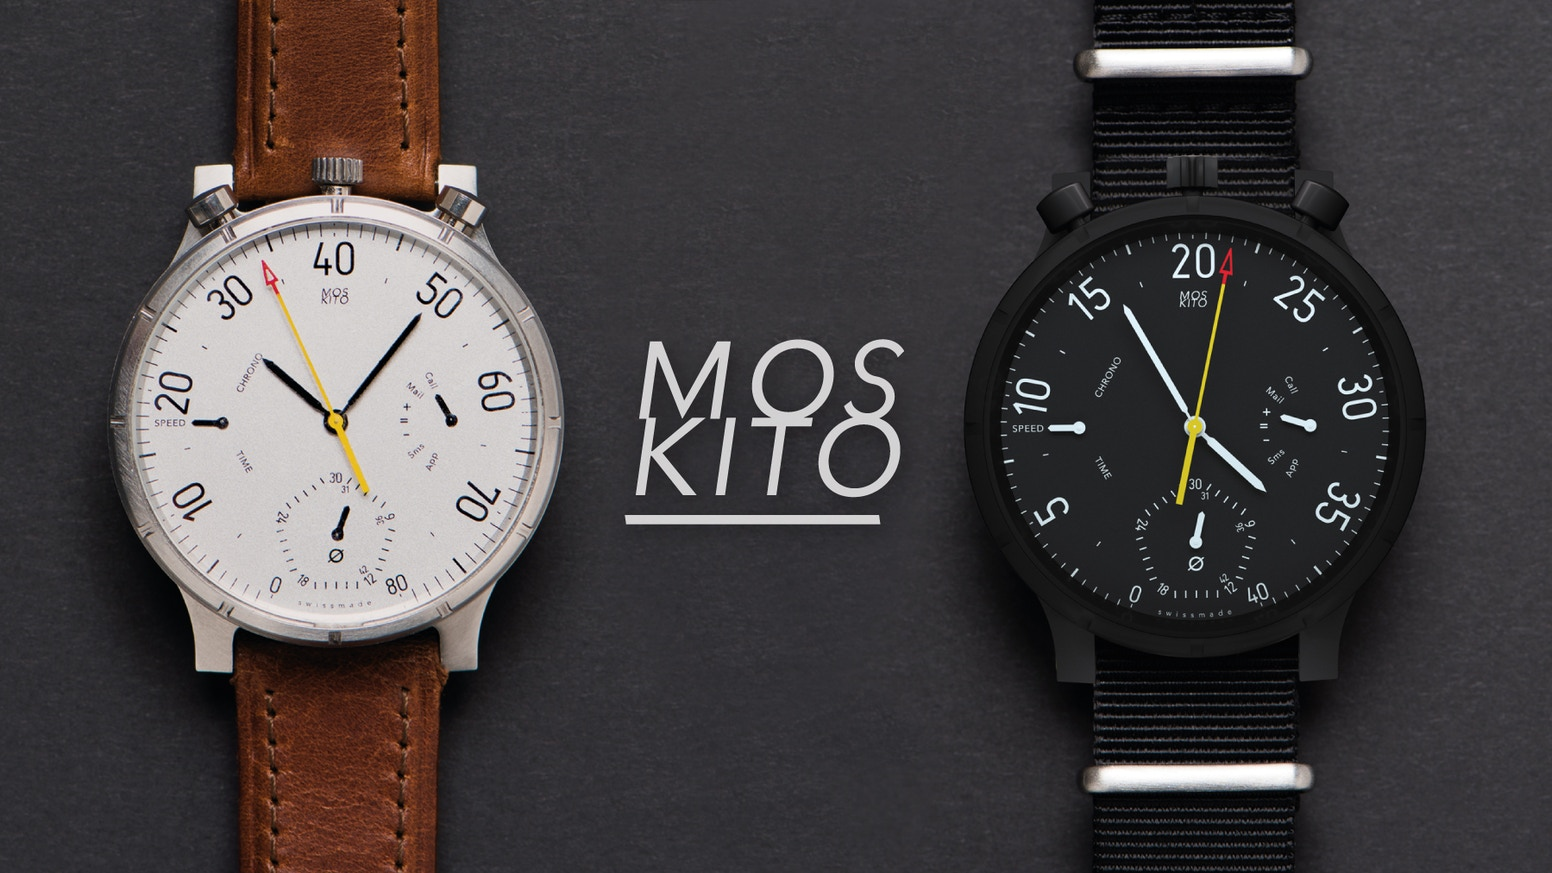 M O S KI T O – Precision chronograph and smart bike computer in one. A designer piece for gadget lovers.